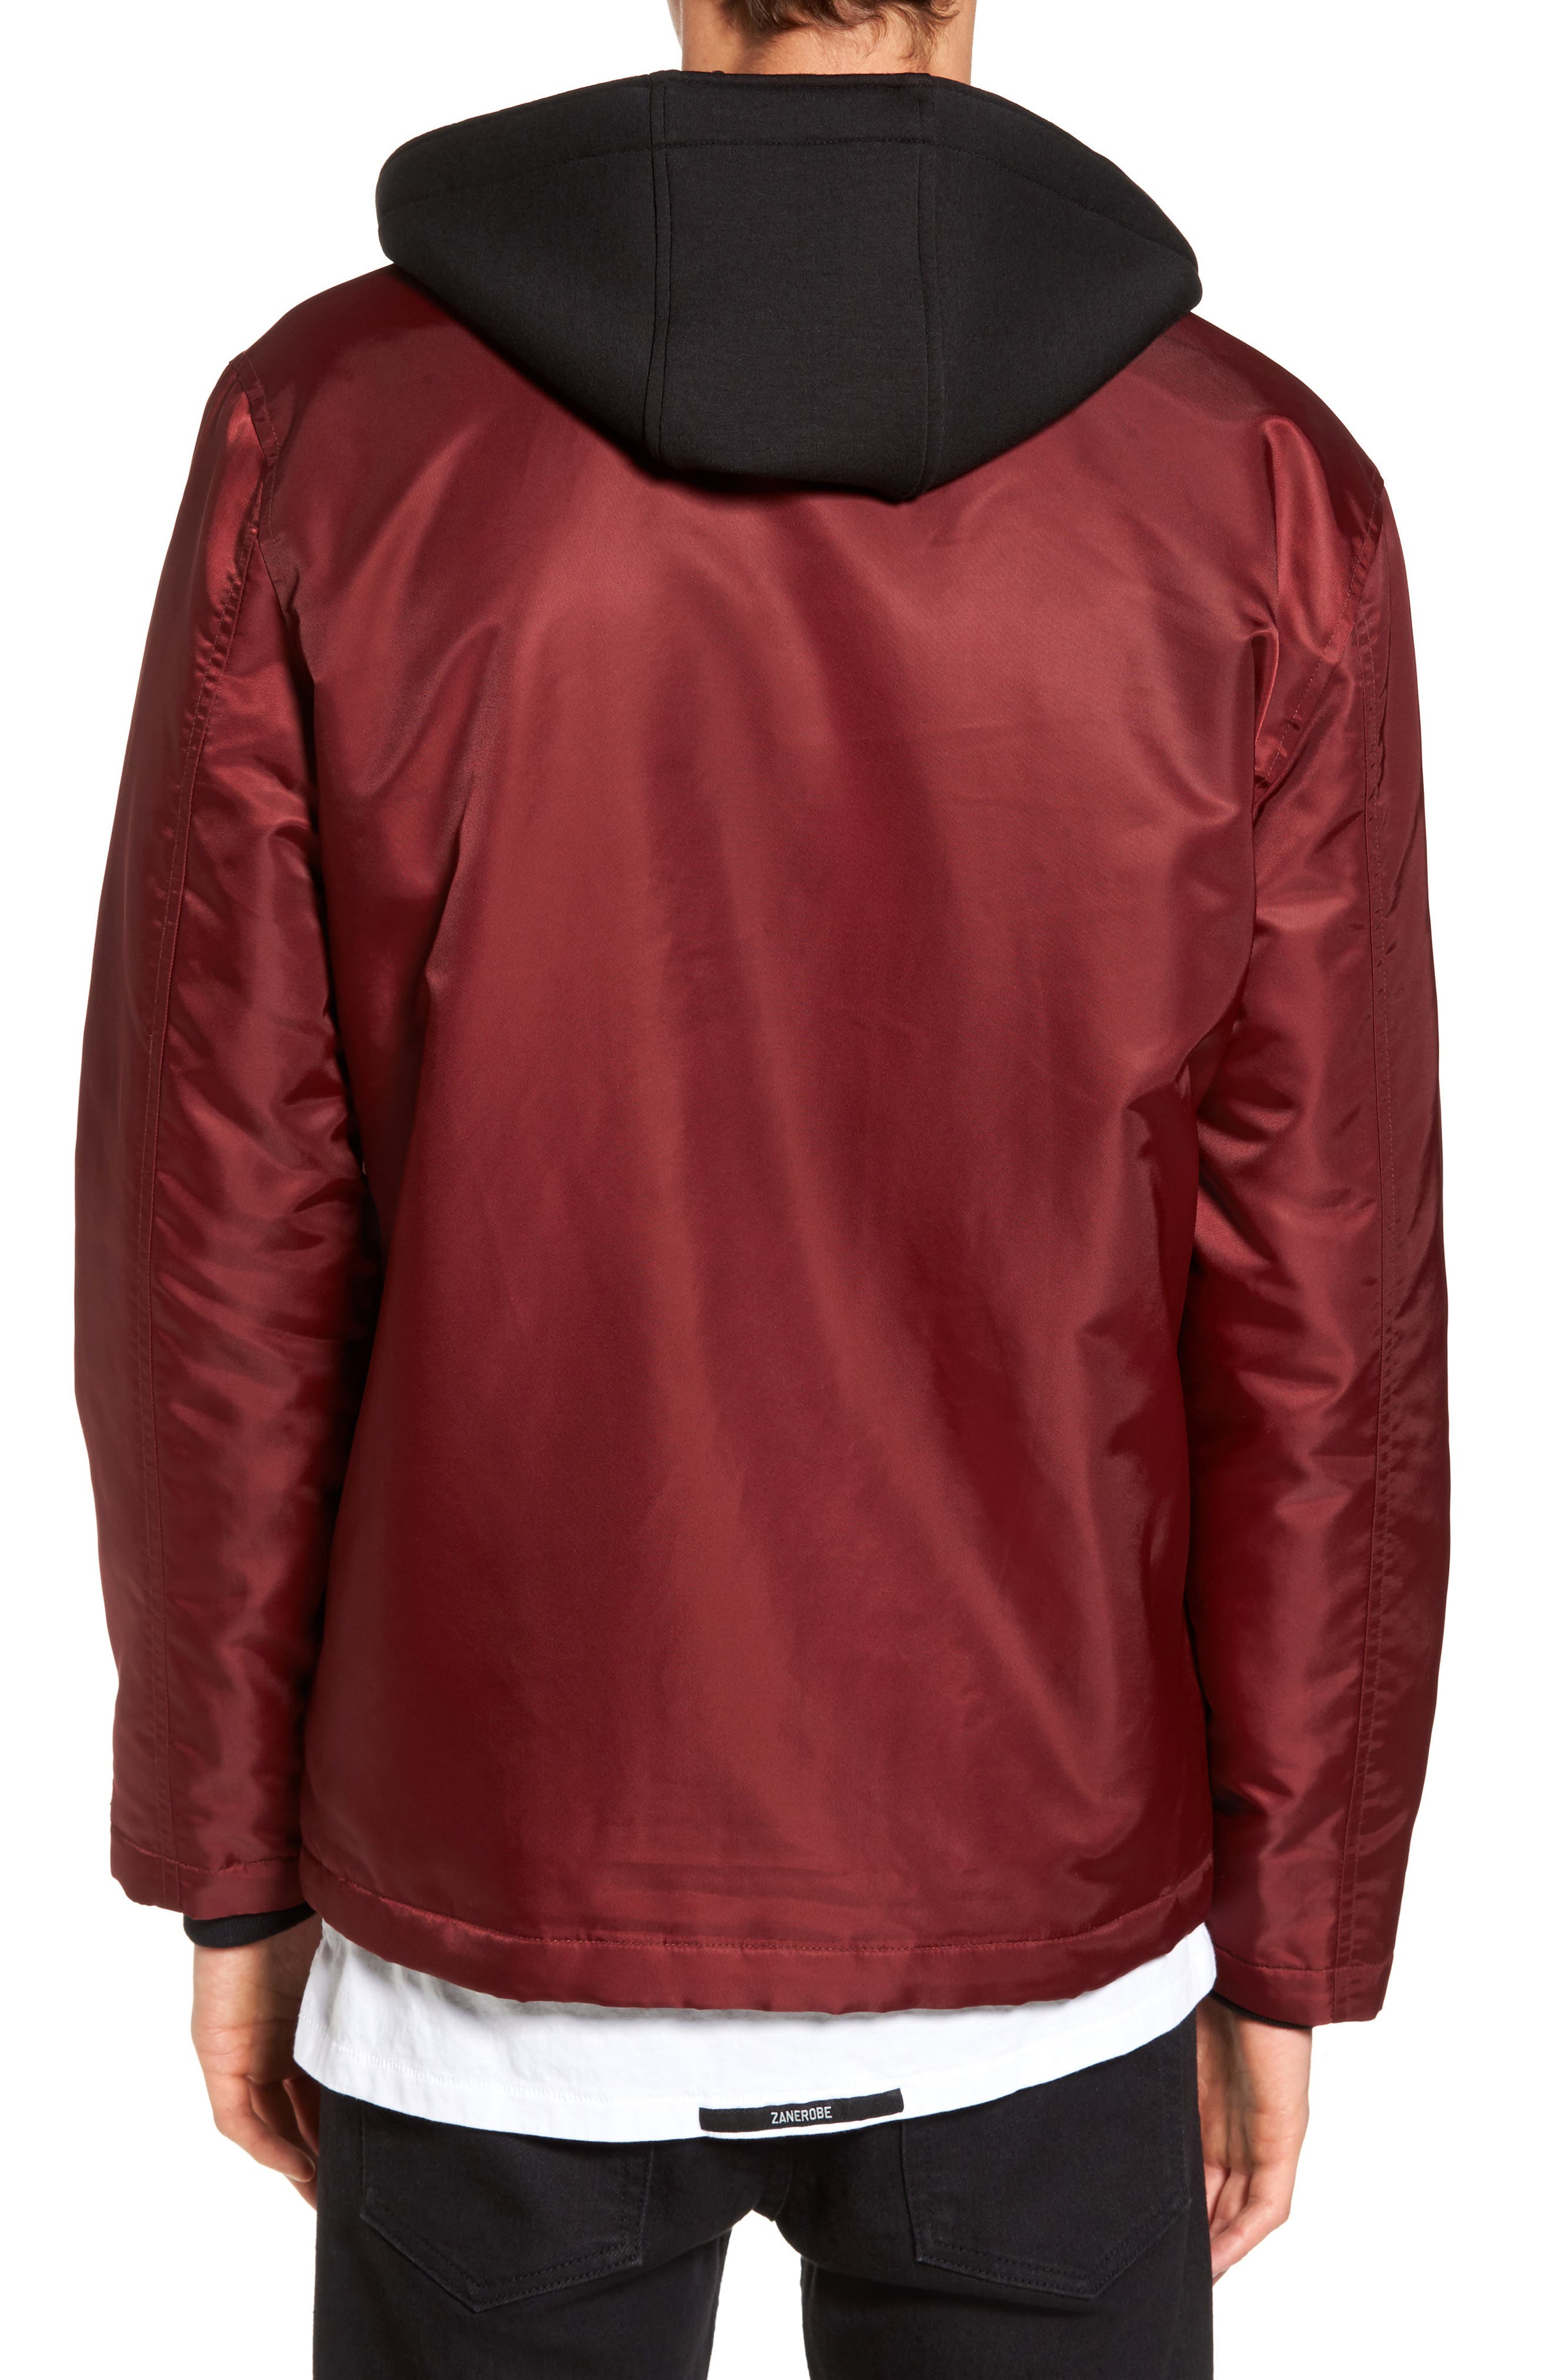 Yorkshire Hooded Coach's Jacket,                             Alternate thumbnail 2, color,                             Burgundy